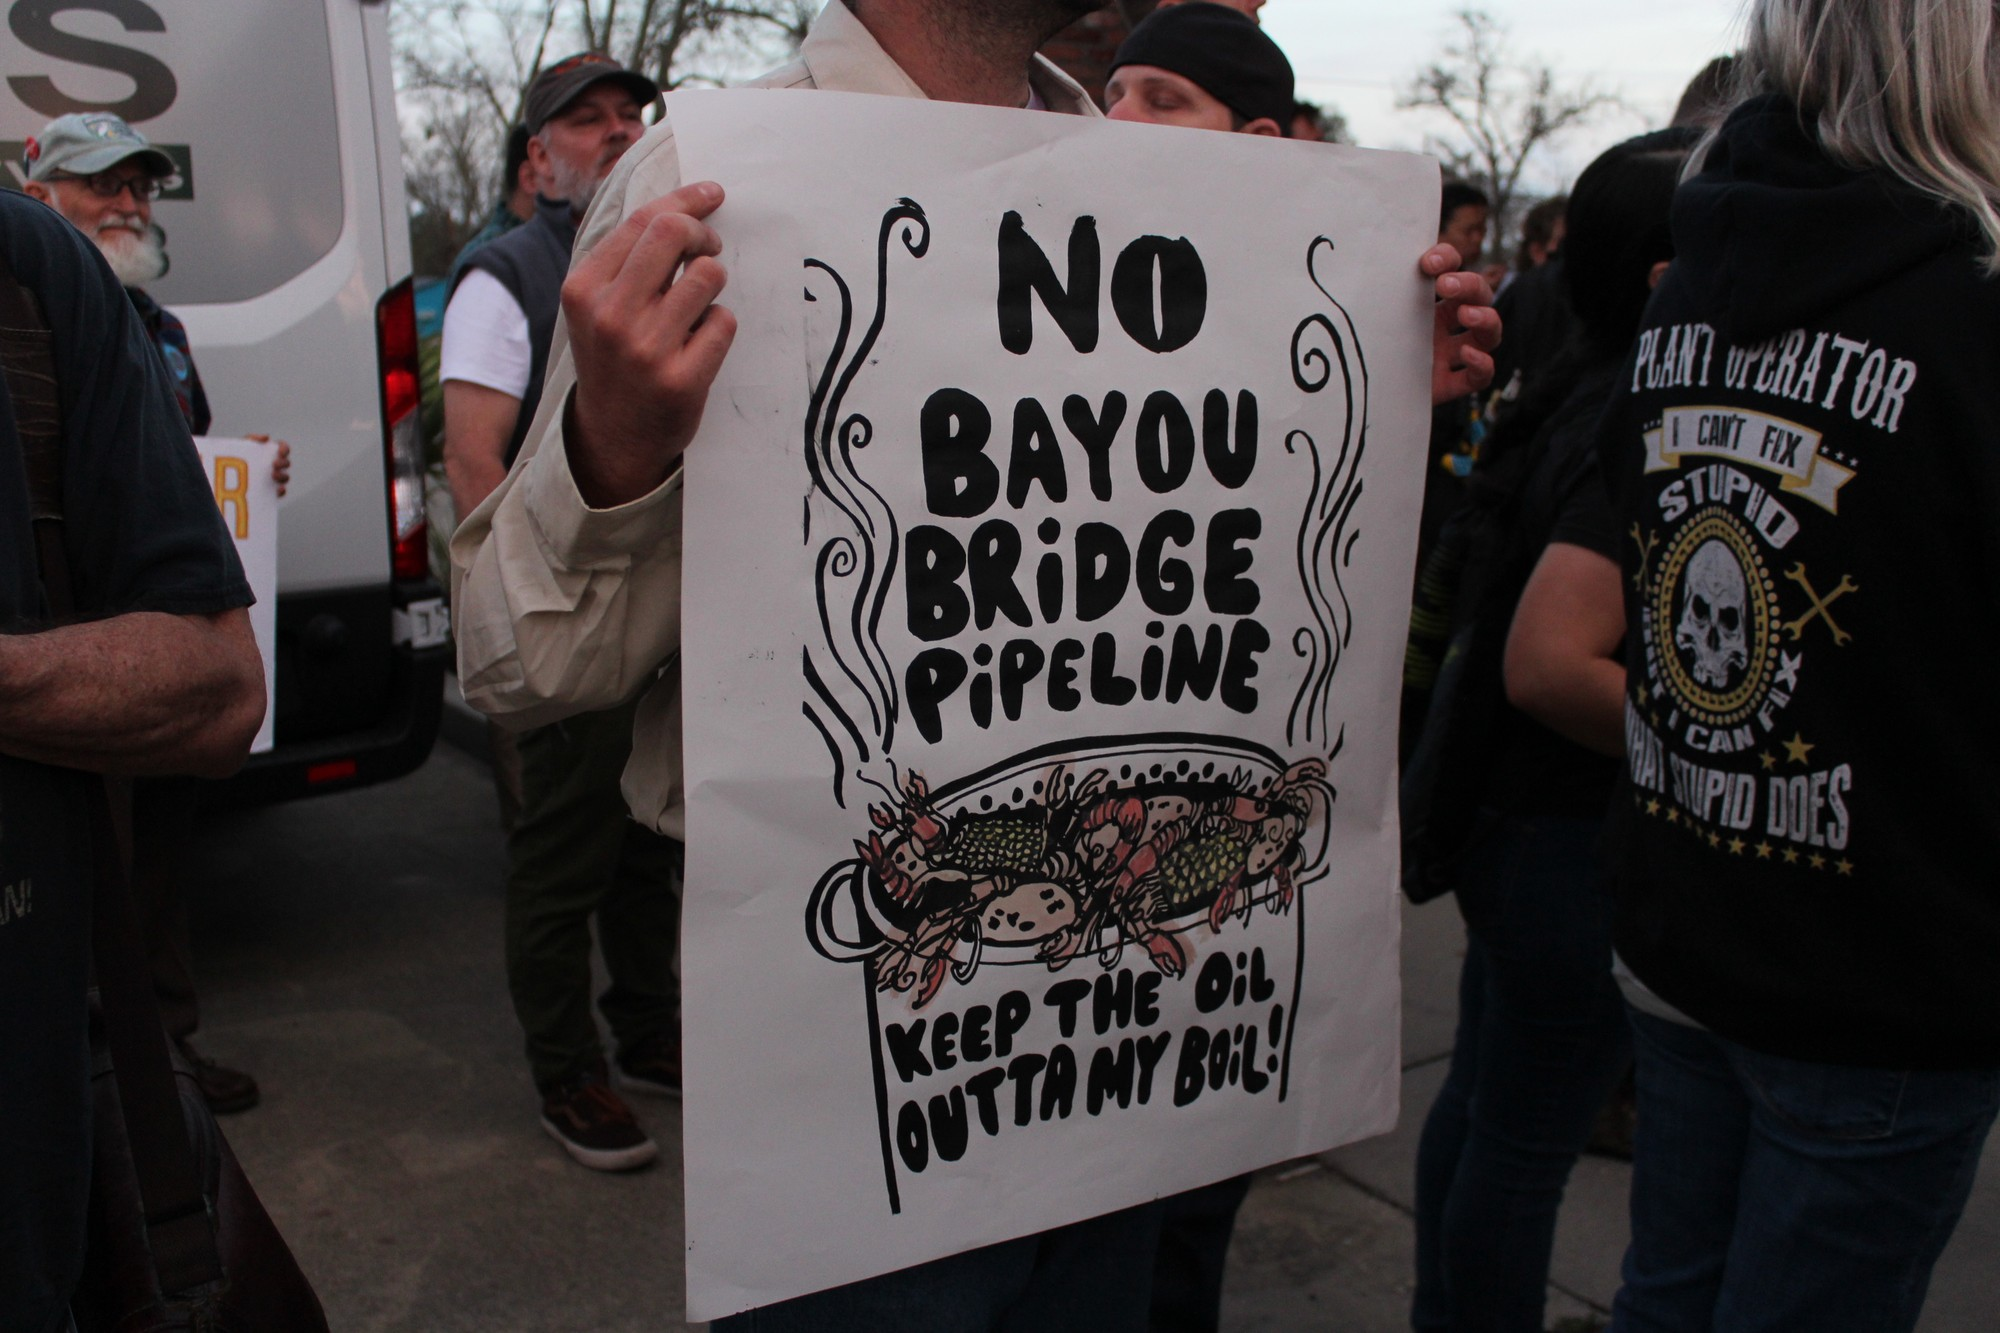 A protester holds up a sign prior to a hearing for the Bayou Bridge pipeline. Speakers at the hearing were often interrupted by protests from the crowd.